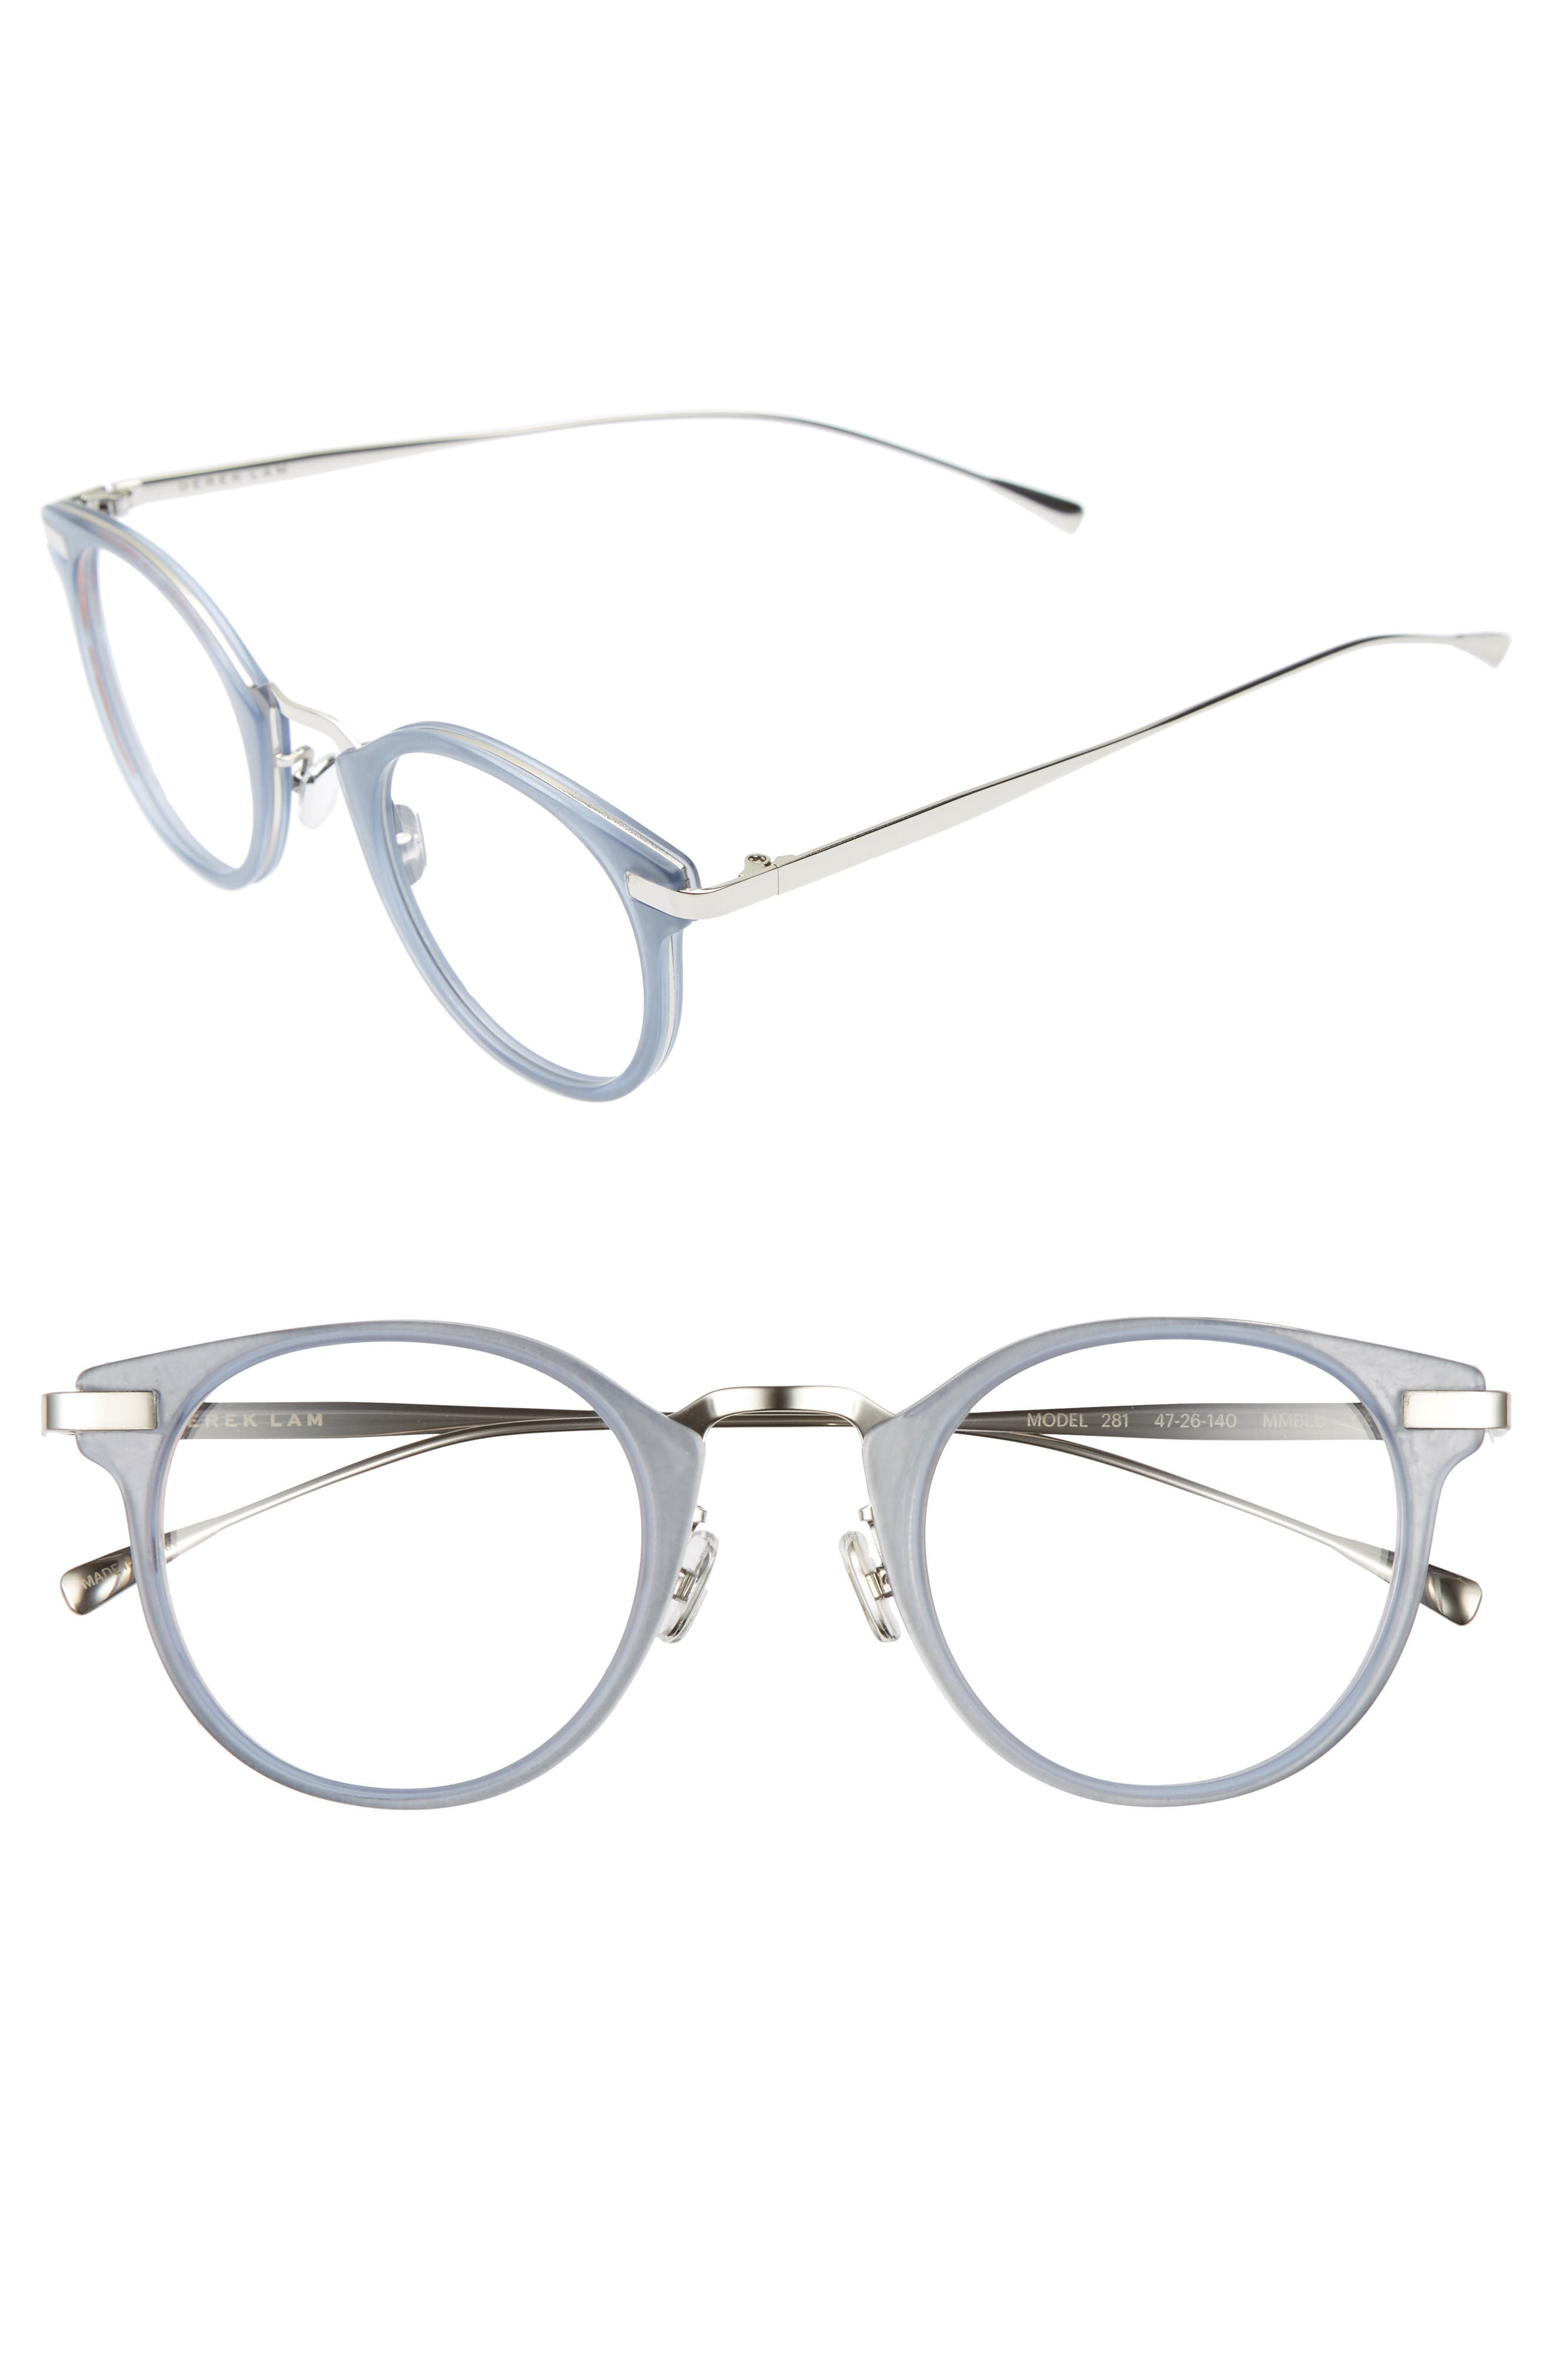 Alternate Image 1 Selected - Derek Lam 47mm Optical Glasses